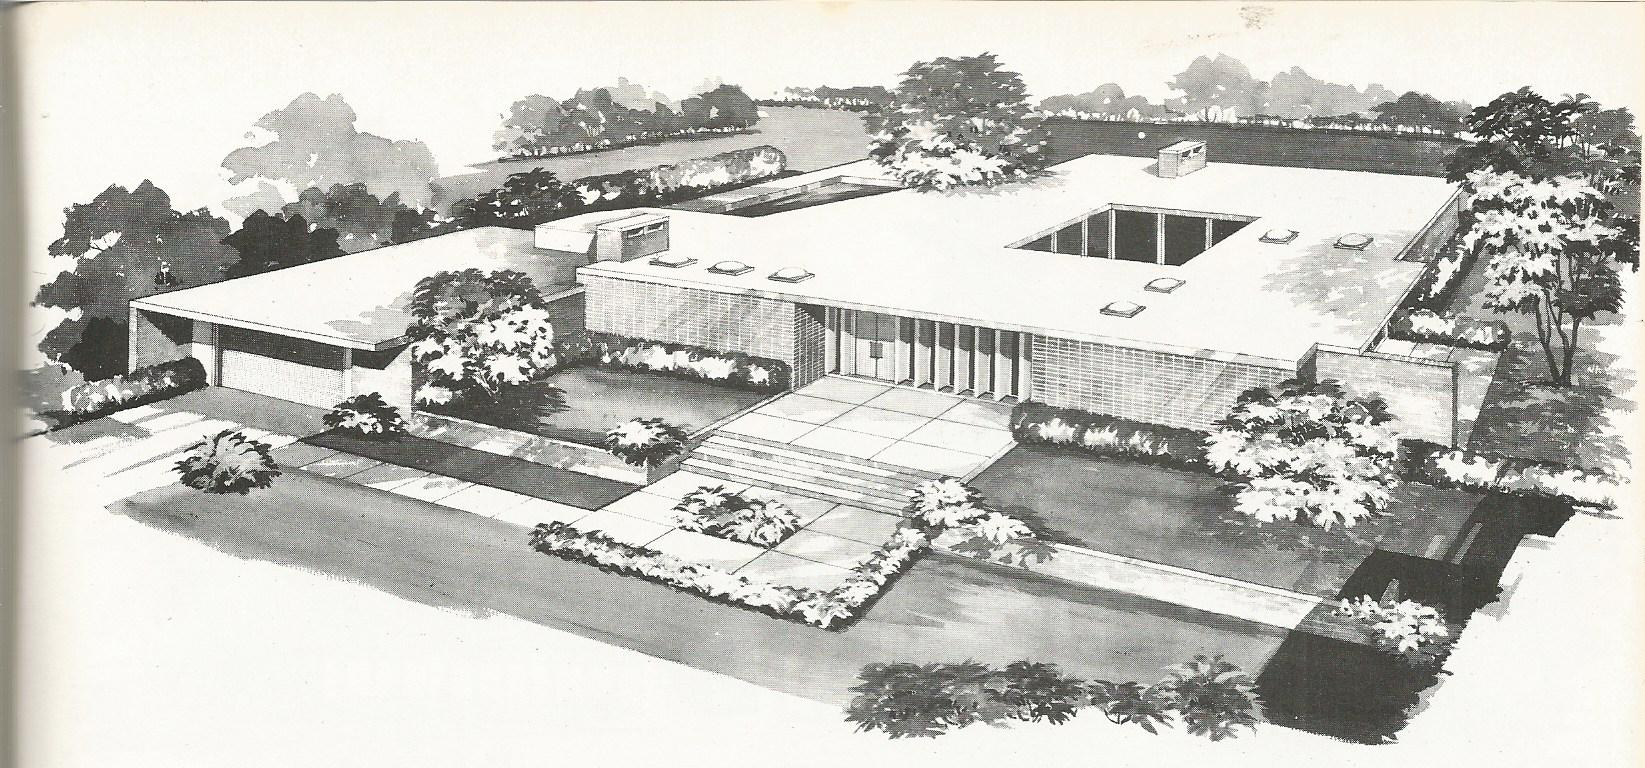 Vintage House Plans: New And Refreshing Mid Century Contemporary